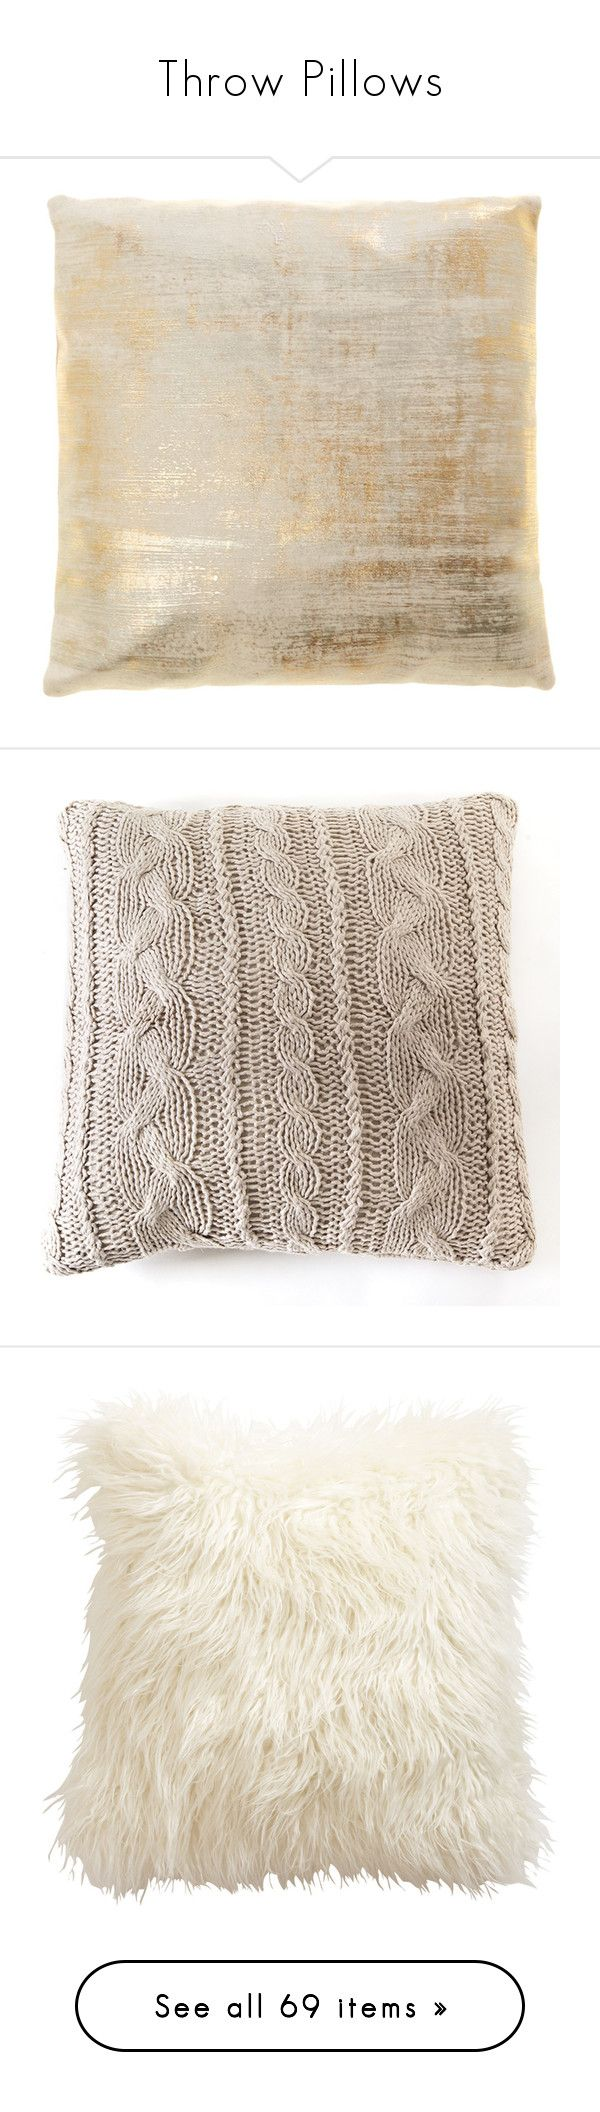 Throw Pillows by aimeewhitling on Polyvore featuring polyvore, home, home decor, throw pillows, pillows, sale, organic throw pillows, gold home accessories, gold accent pillows, gold throw pillows, gold toss pillows, bed & bath, bedding, bed accessories, furniture, plush bedding, pom pom at home, pom pom at home bedding, fillers, decor, backgrounds, ivory throw pillows, faux fur throw pillows, off white throw pillows, cream colored throw pillows, ethan allen, light grey, pleated bedding…